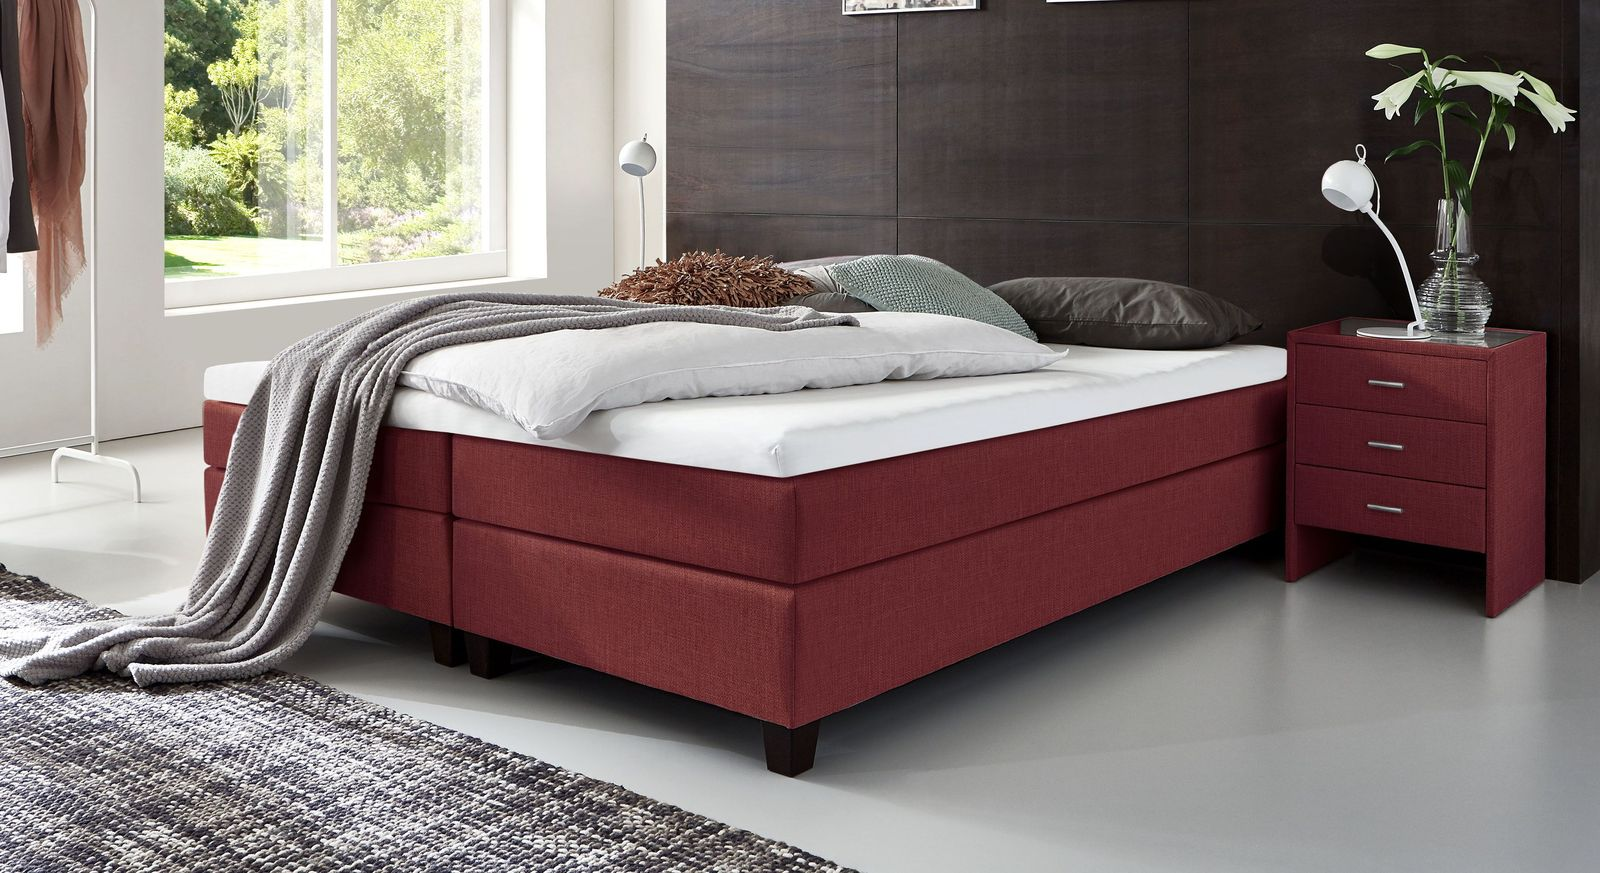 53 cm hohe Boxspringliege Luciano aus meliertem Webstoff in Rot